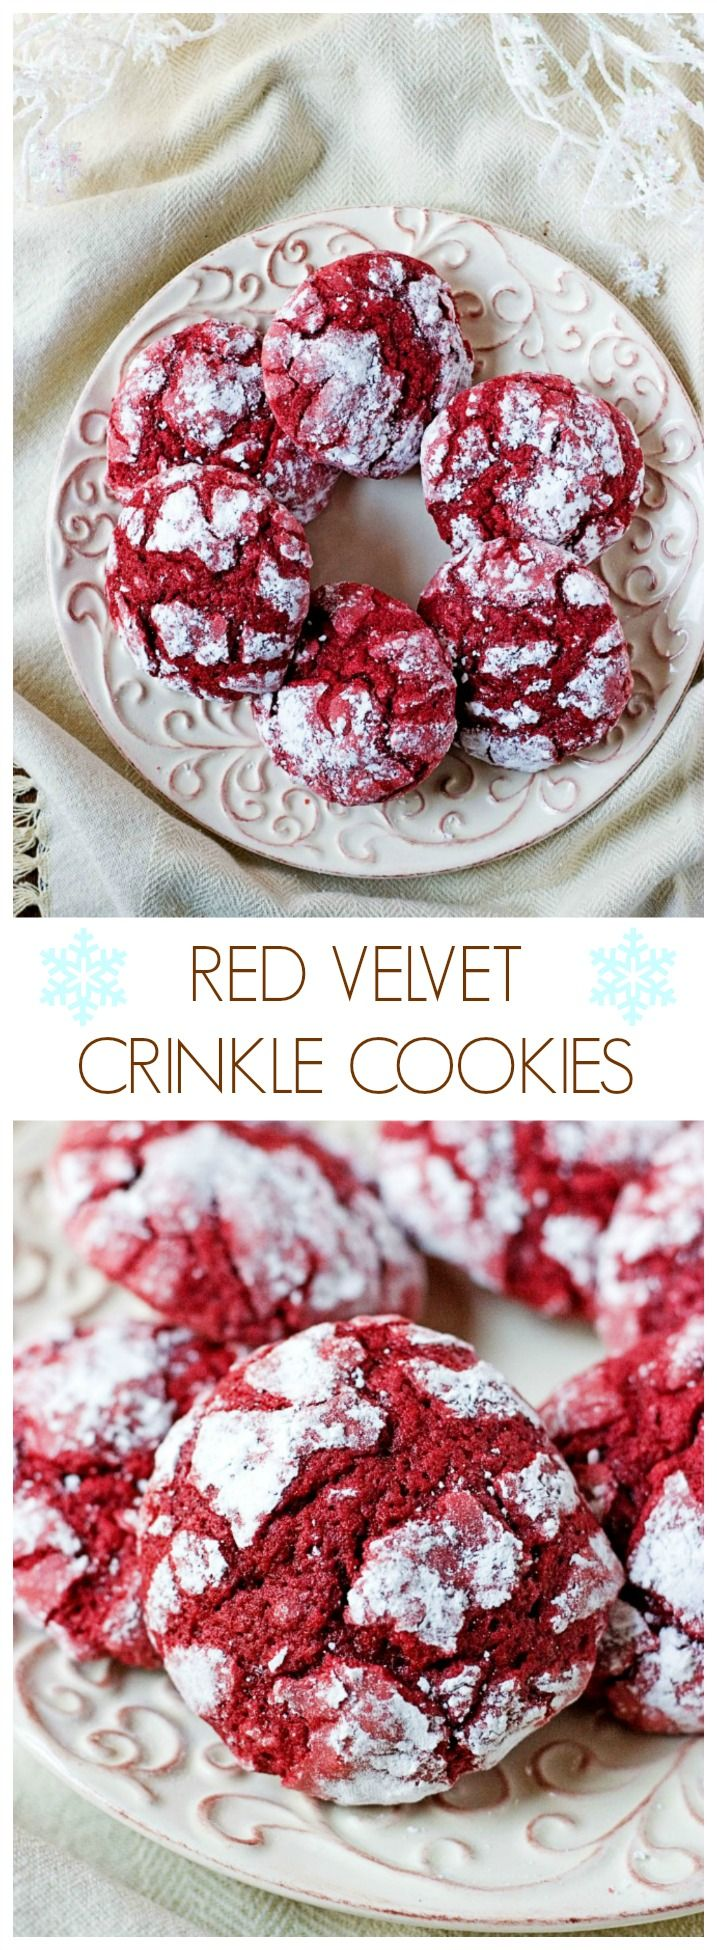 Red Velvet Crinkle Cookies - easy and festive crinkle cookies made from scratch! They will be perfect for your Christmas cookie plate!